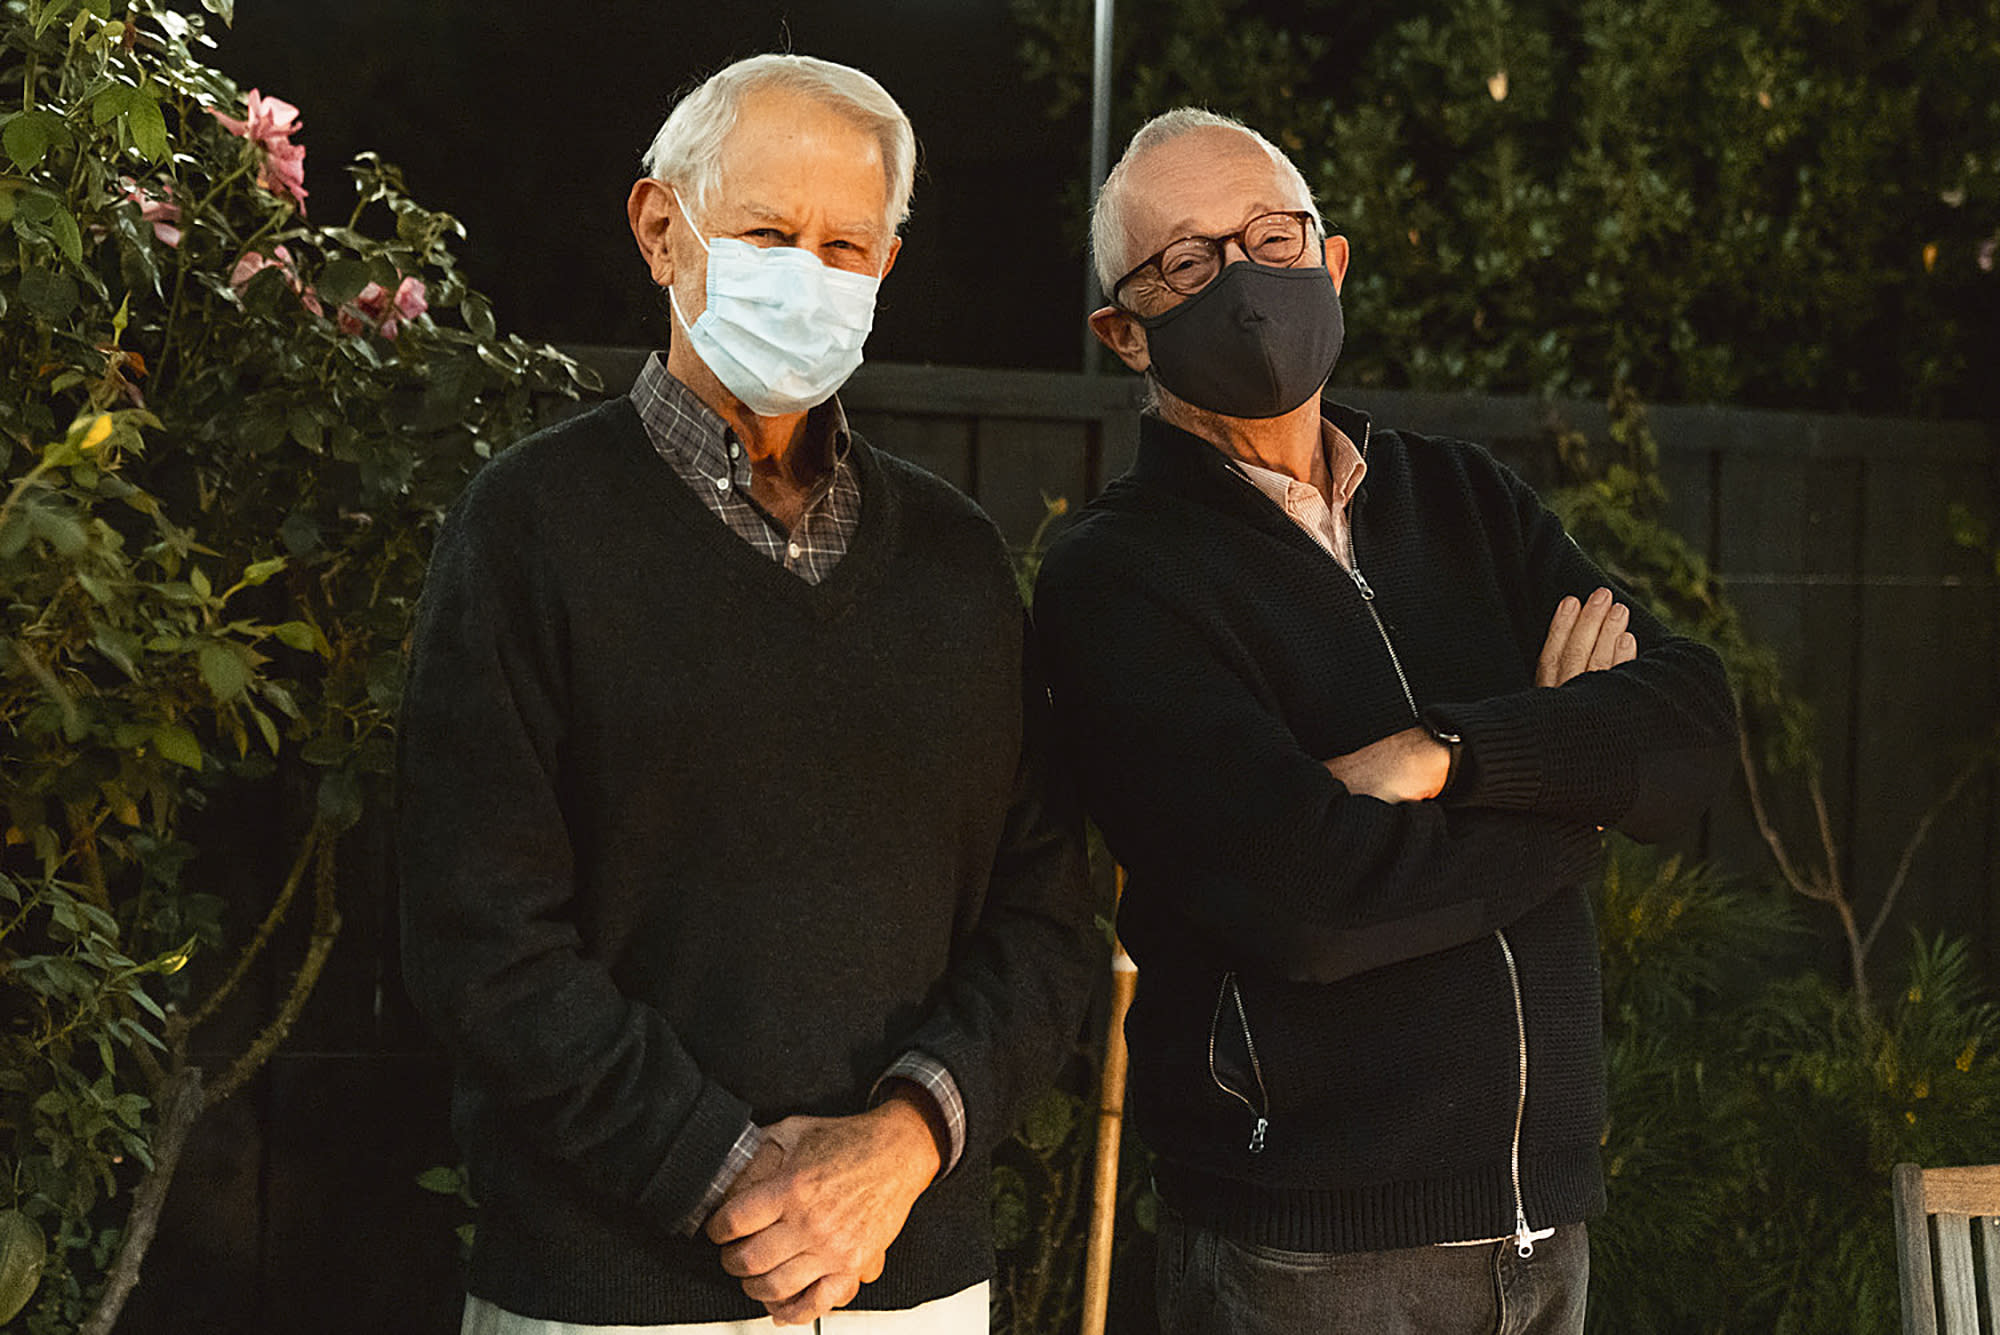 In this Monday, Oct. 12, 2020 photo provided by Stanford University, Robert Wilson, left, and Paul Milgrom wear masks as they stand for a photo in Stanford, Calif. The two American economists, both professors at Stanford, won the Nobel Prize in Economics for improving how auctions work. That research that underlies much of today's economy — from the way Google sells advertising to the way telecoms companies acquire airwaves from the government. (Andrew Brodhead/Stanford News Service via AP)